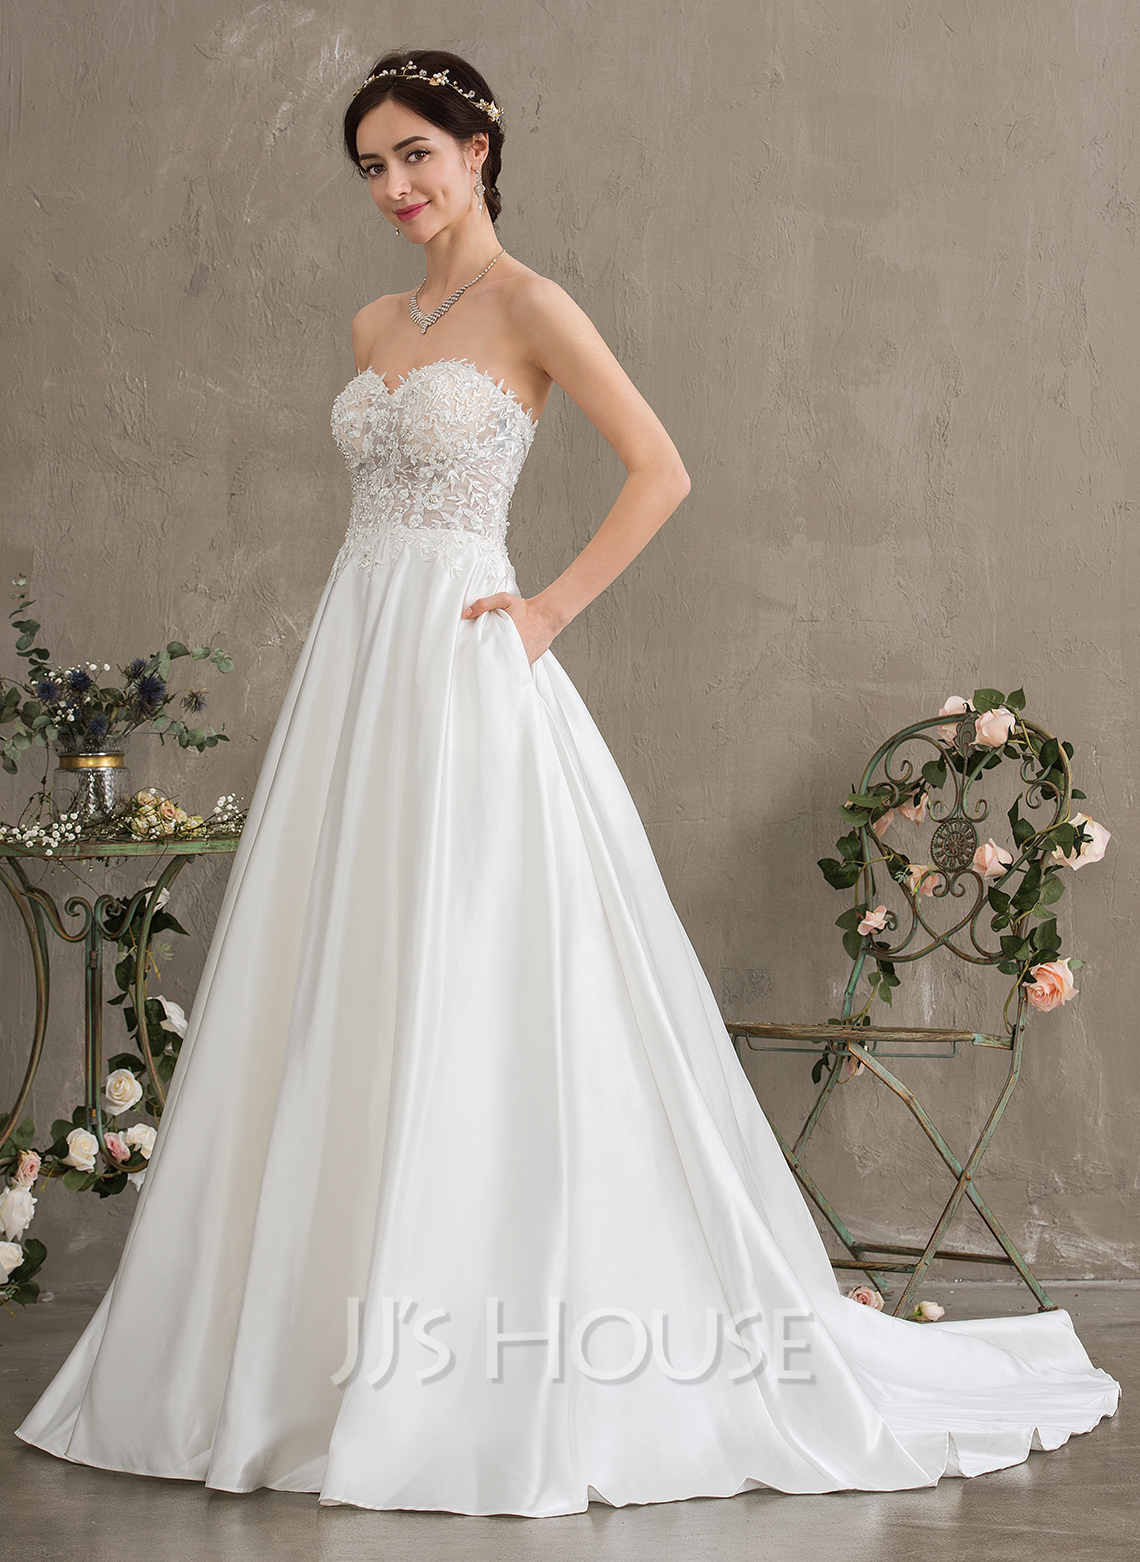 e6ebdd320 Ball-Gown/Princess Sweetheart Court Train Satin Wedding Dress With Beading  Sequins Pockets. Loading zoom